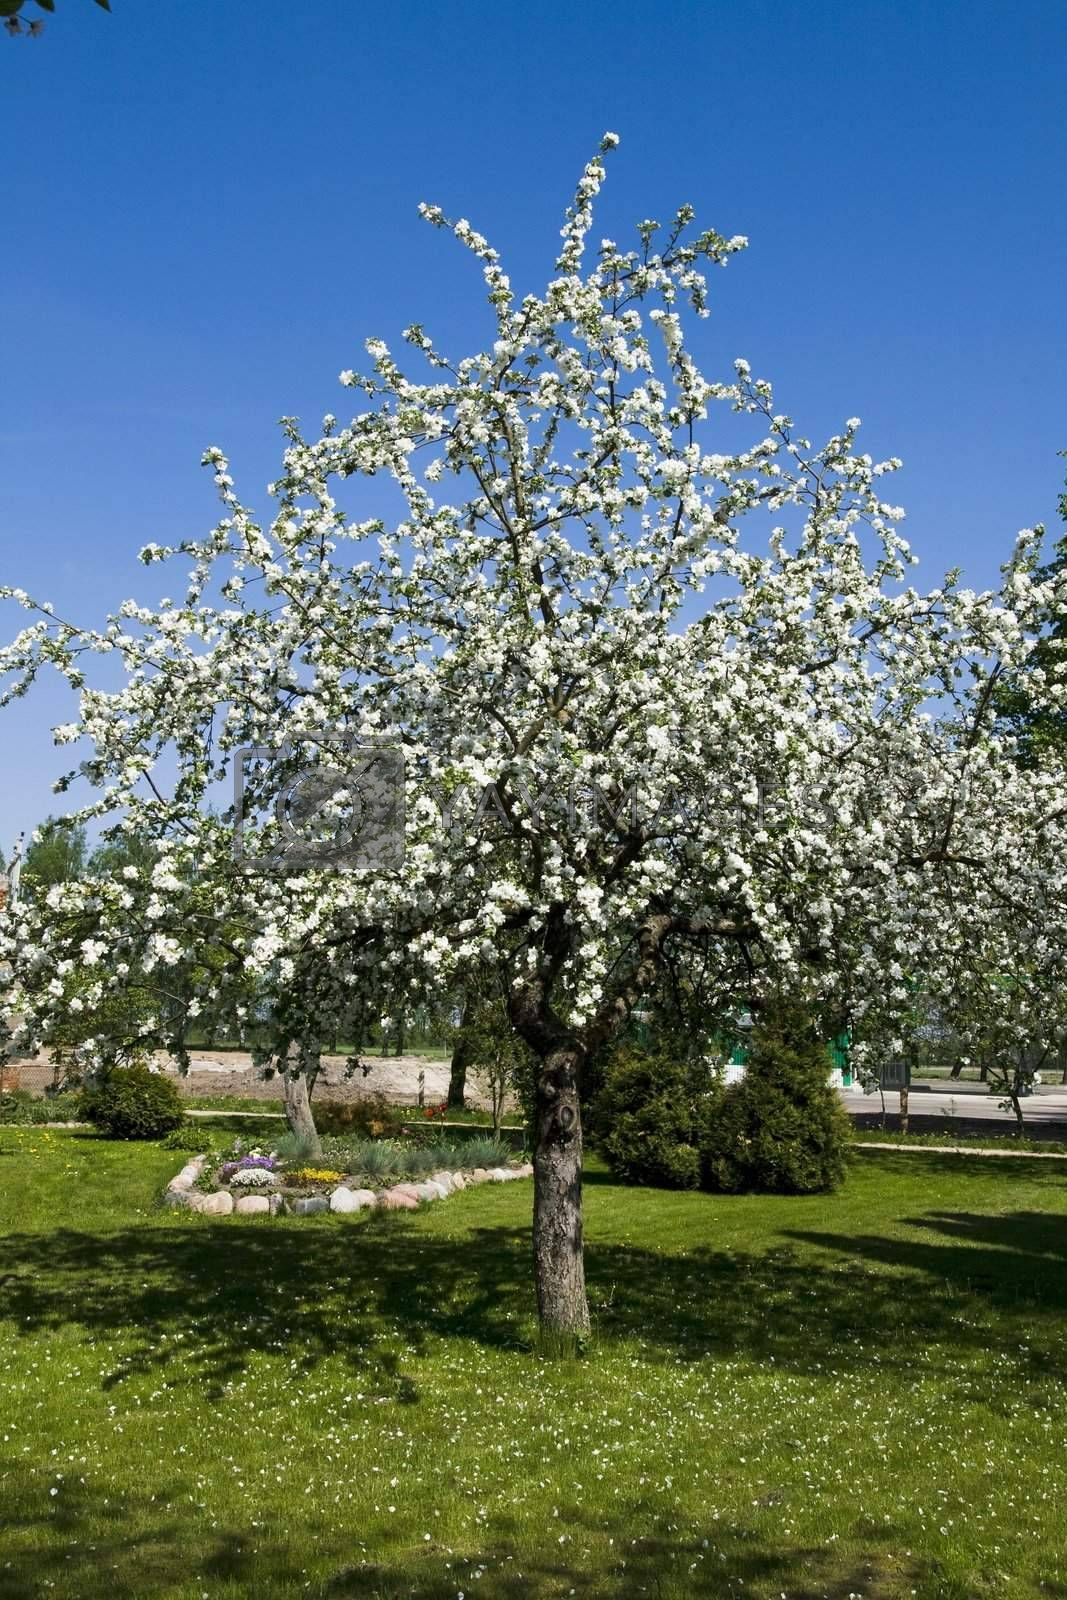 Blooming apple tree in a garden at springtime